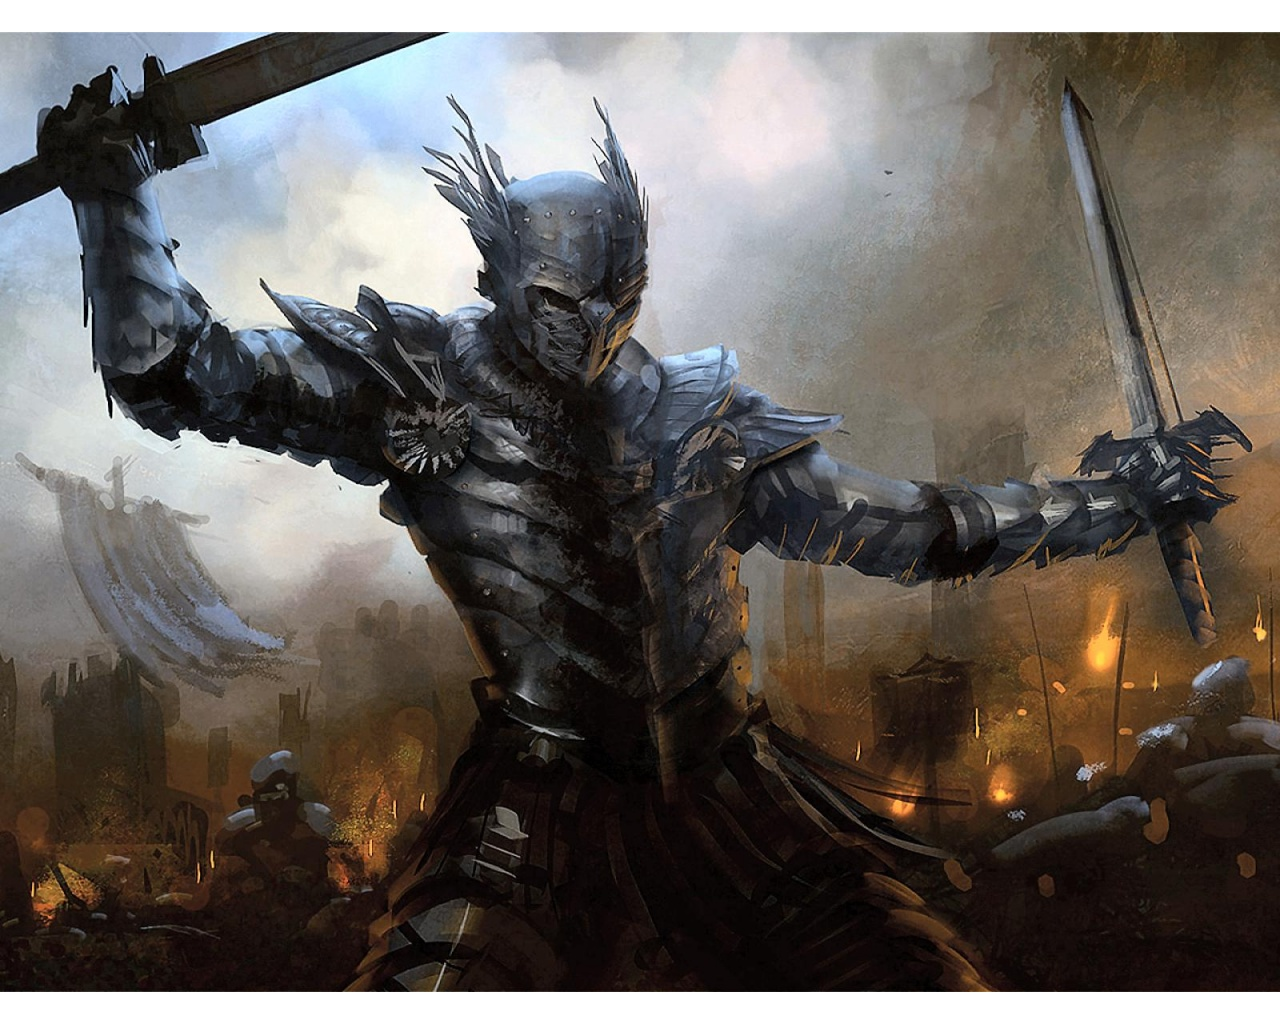 Armor of kings pc game | 1280 x 1024 | download | close